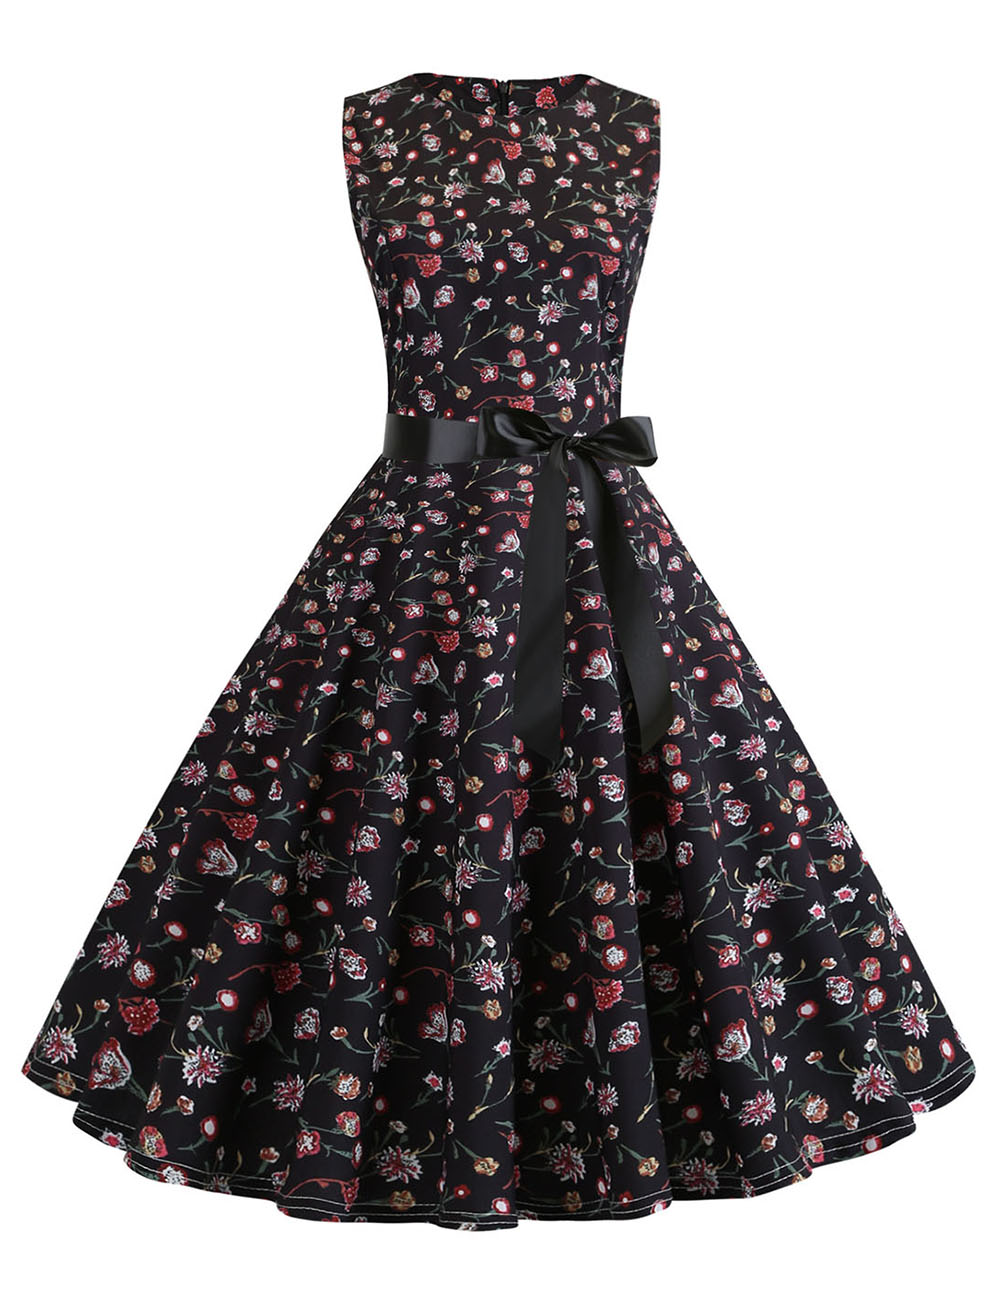 //cdn.affectcloud.com/feelingirldress/upload/imgs/2019-06-10/VZ190452-M11/VZ190452-M11.jpg